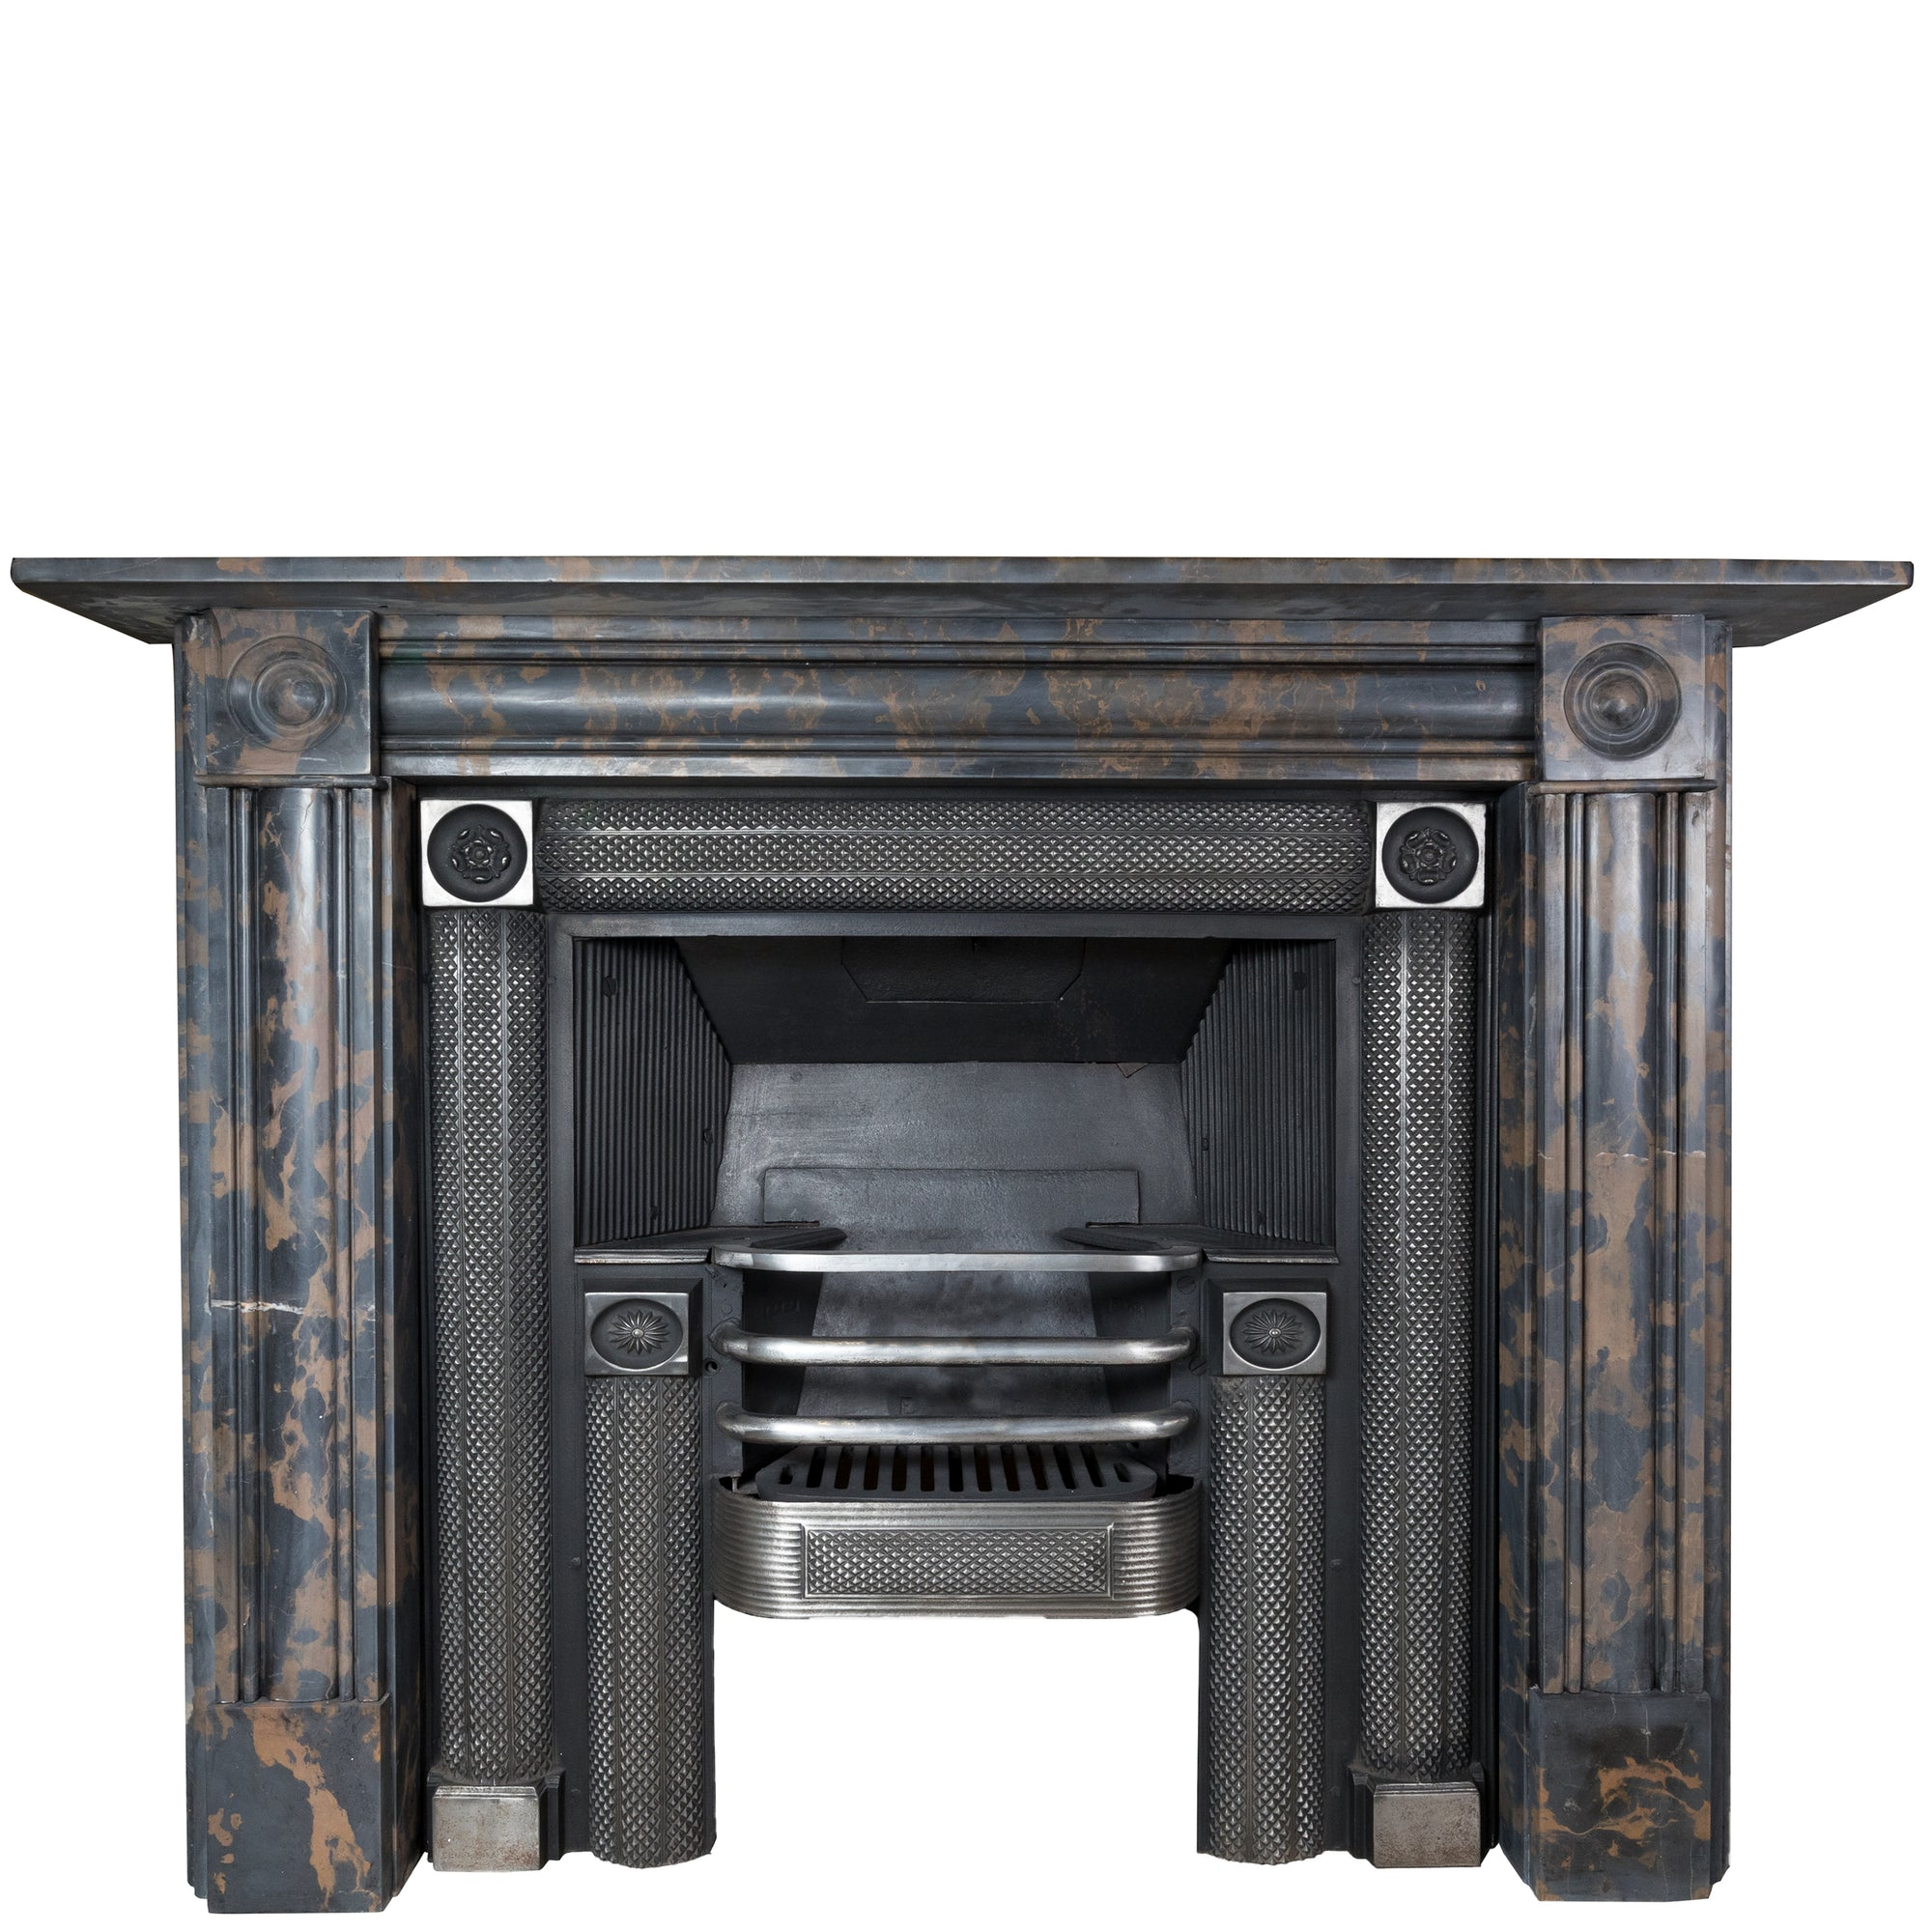 Portoro Marble Georgian Style Bullseye Fireplace Surround